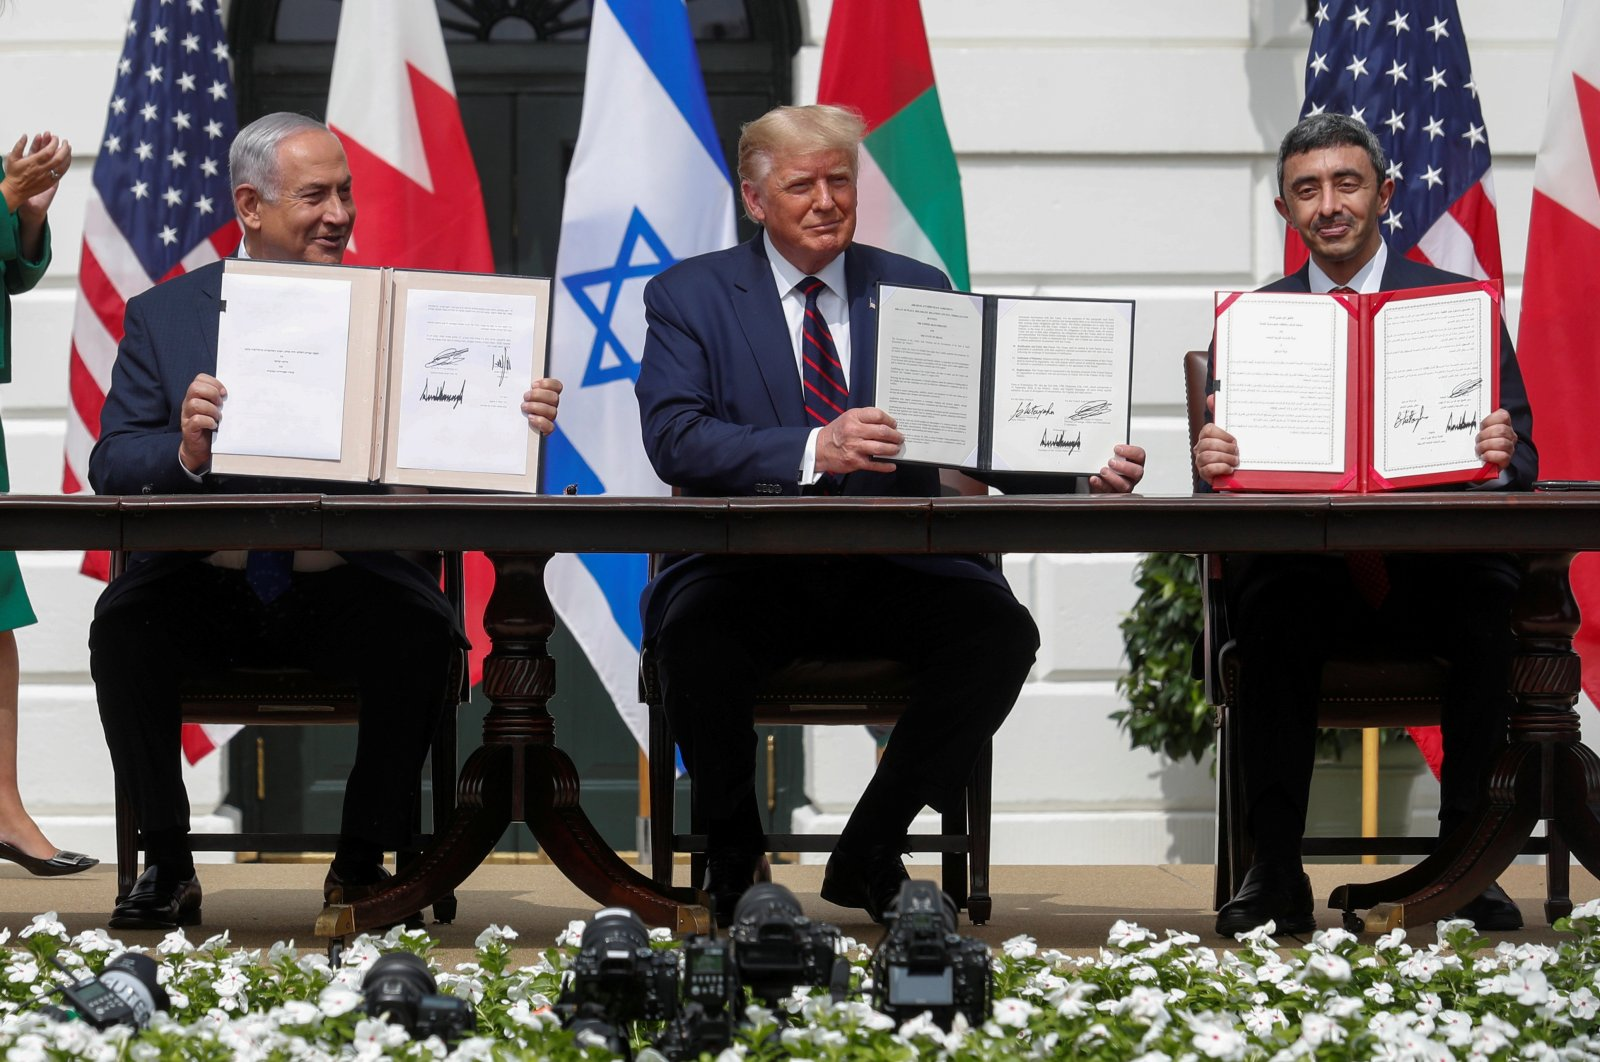 Israel's Prime Minister Benjamin Netanyahu, U.S. President Donald Trump and United Arab Emirates (UAE) Foreign Minister Abdullah bin Zayed display their copies of signed agreements as they participate in the signing ceremony of the Abraham Accords in Washington D.C., Sept. 15, 2020. (Reuters Photo)